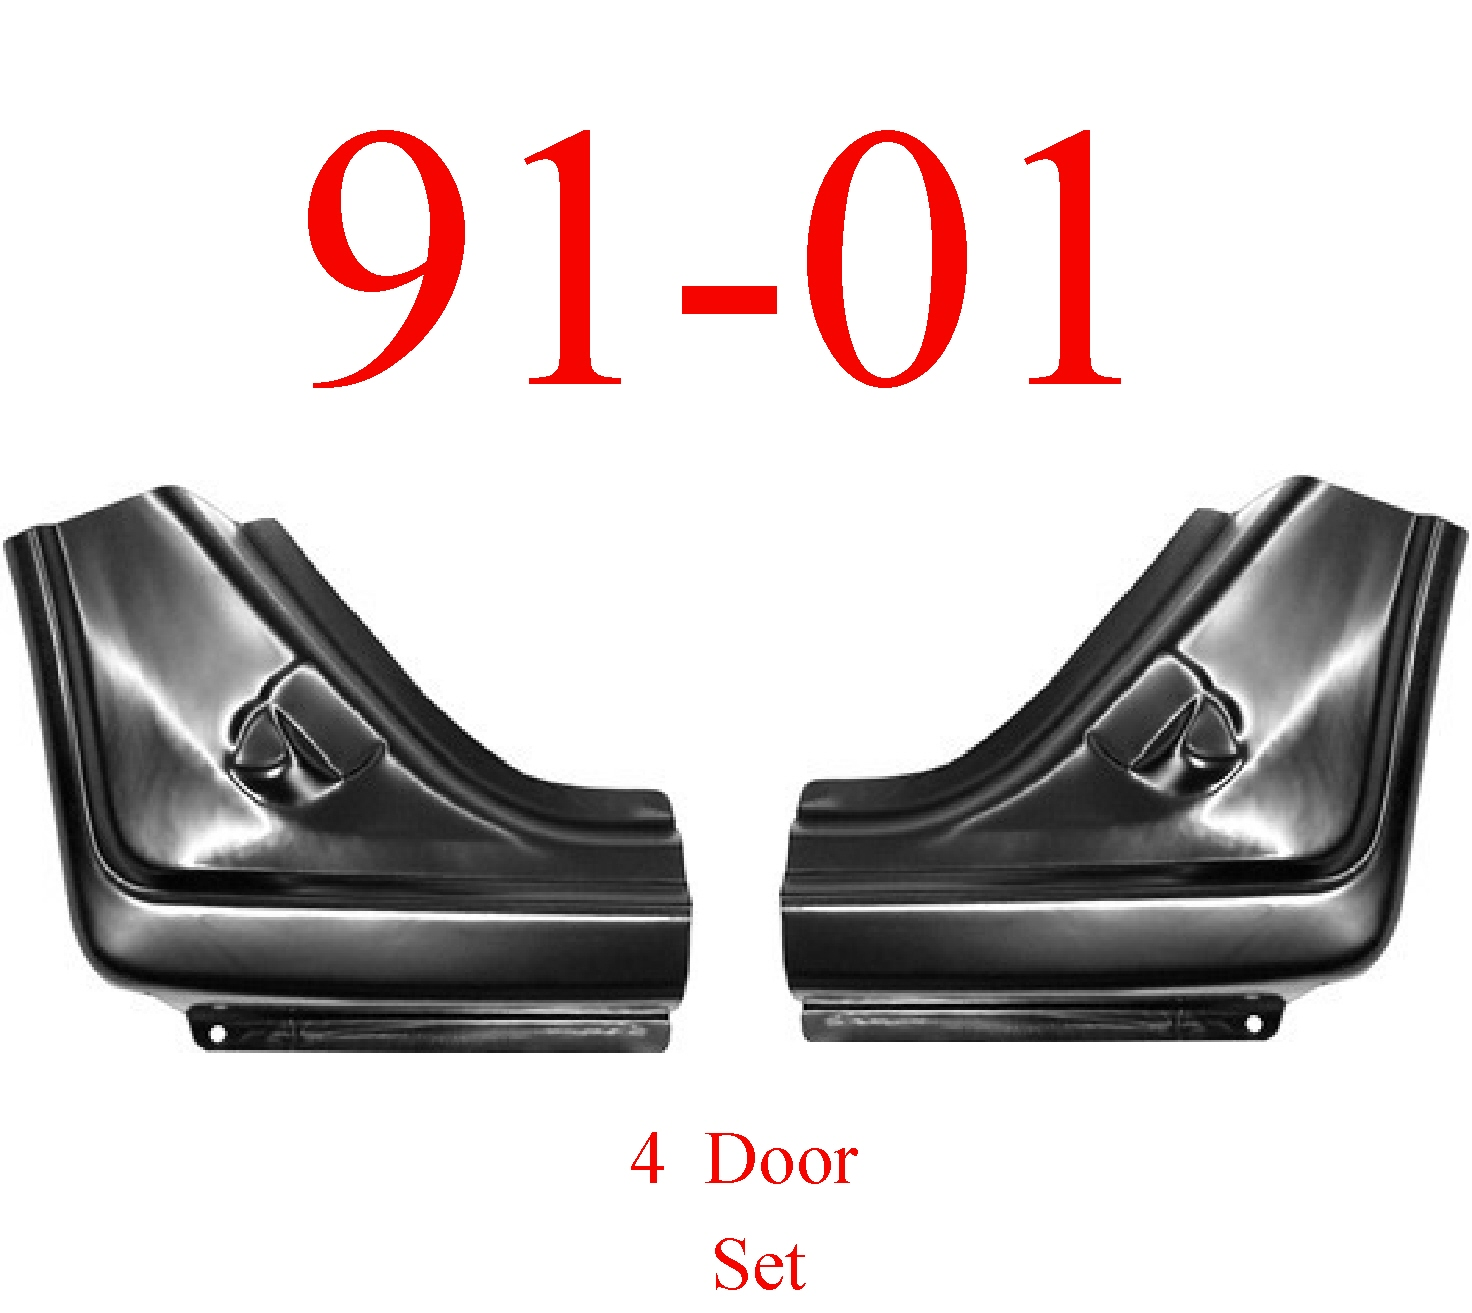 91-01 Ford Explorer Dog Leg Set 4 Door